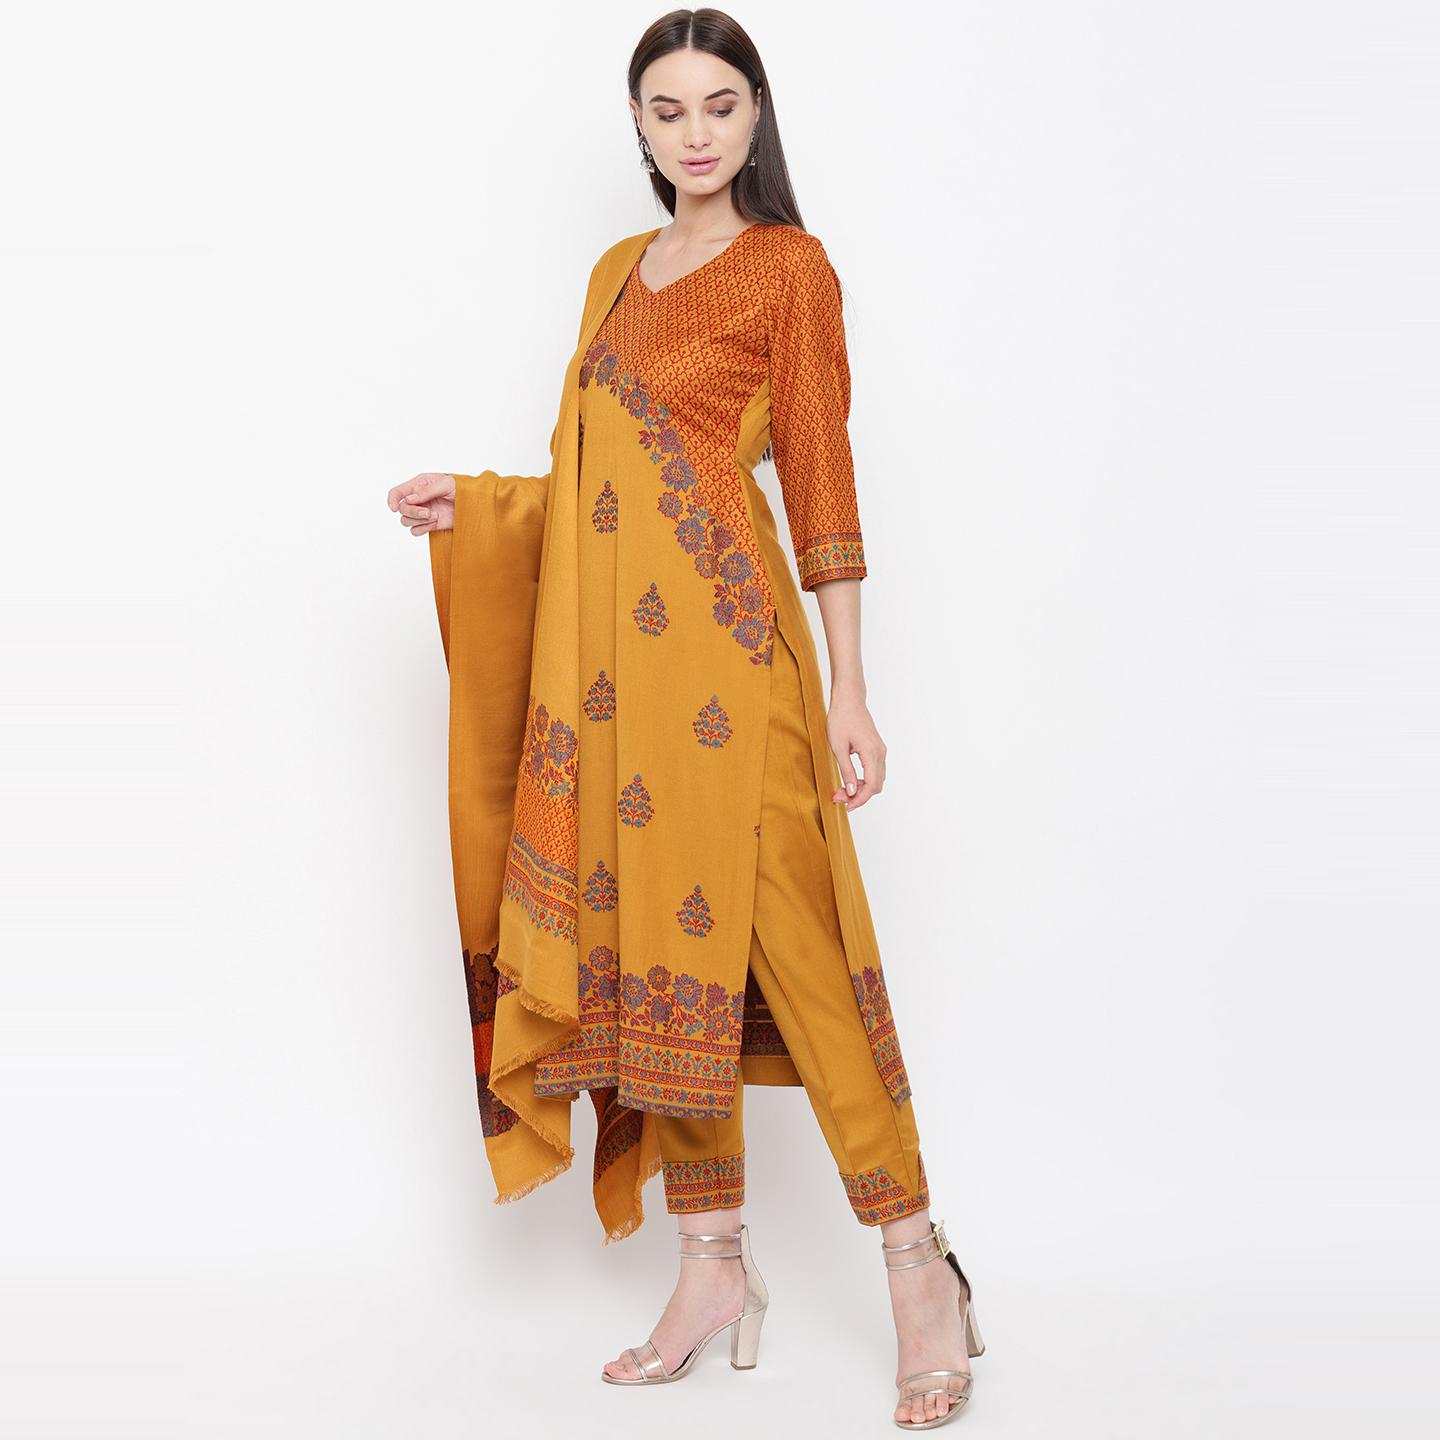 HK Colors Of Fashion - Mustard Yellow Colored Liva Unstitched Viscose Acrylic Dress Material